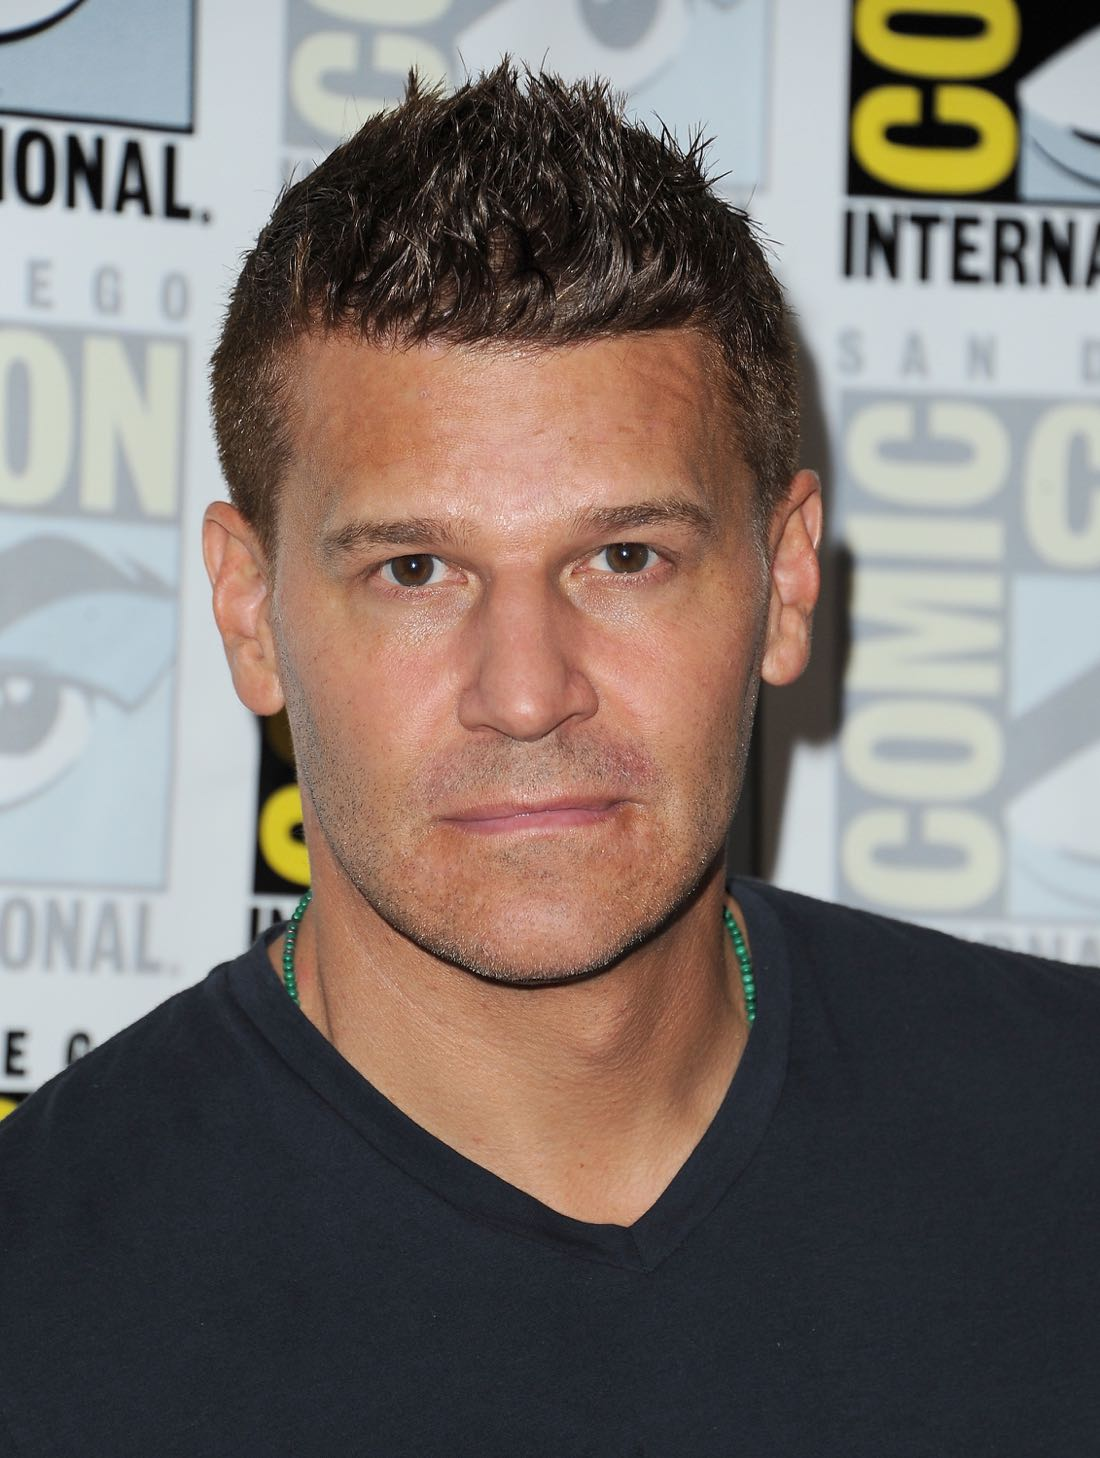 FOX FANFARE AT SAN DIEGO COMIC-CON © 2016: BONES cast member David Boreanaz during the BONES press room on Friday, July 22 at the FOX FANFARE AT SAN DIEGO COMIC-CON © 2016. CR: Scott Kirkland/FOX © 2016 FOX BROADCASTING